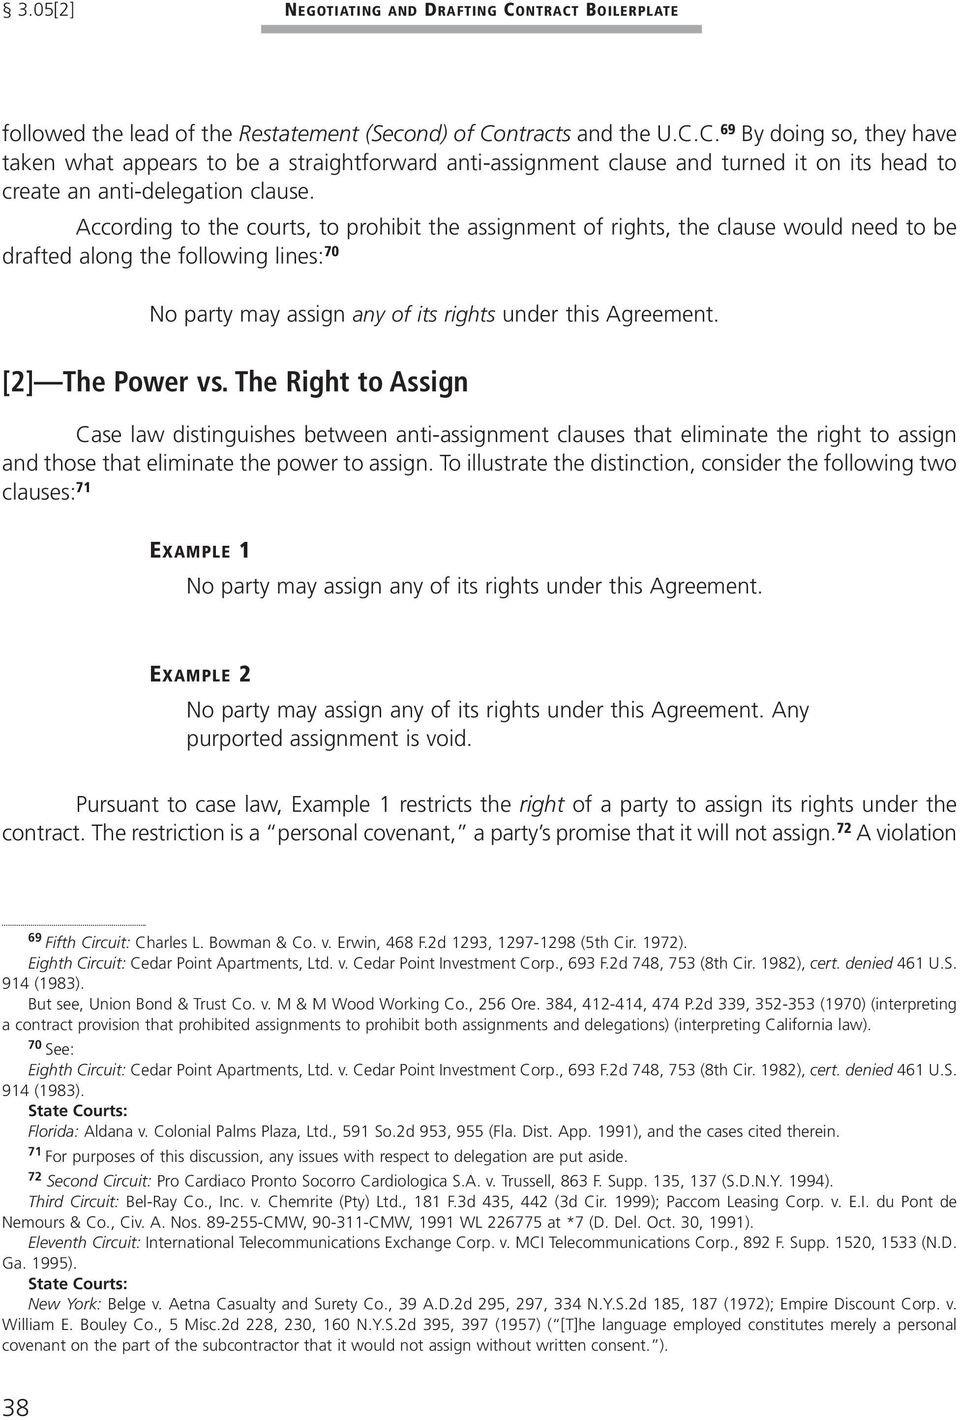 [2] The Power vs. The Right to Assign Case law distinguishes between anti-assignment clauses that eliminate the right to assign and those that eliminate the power to assign.